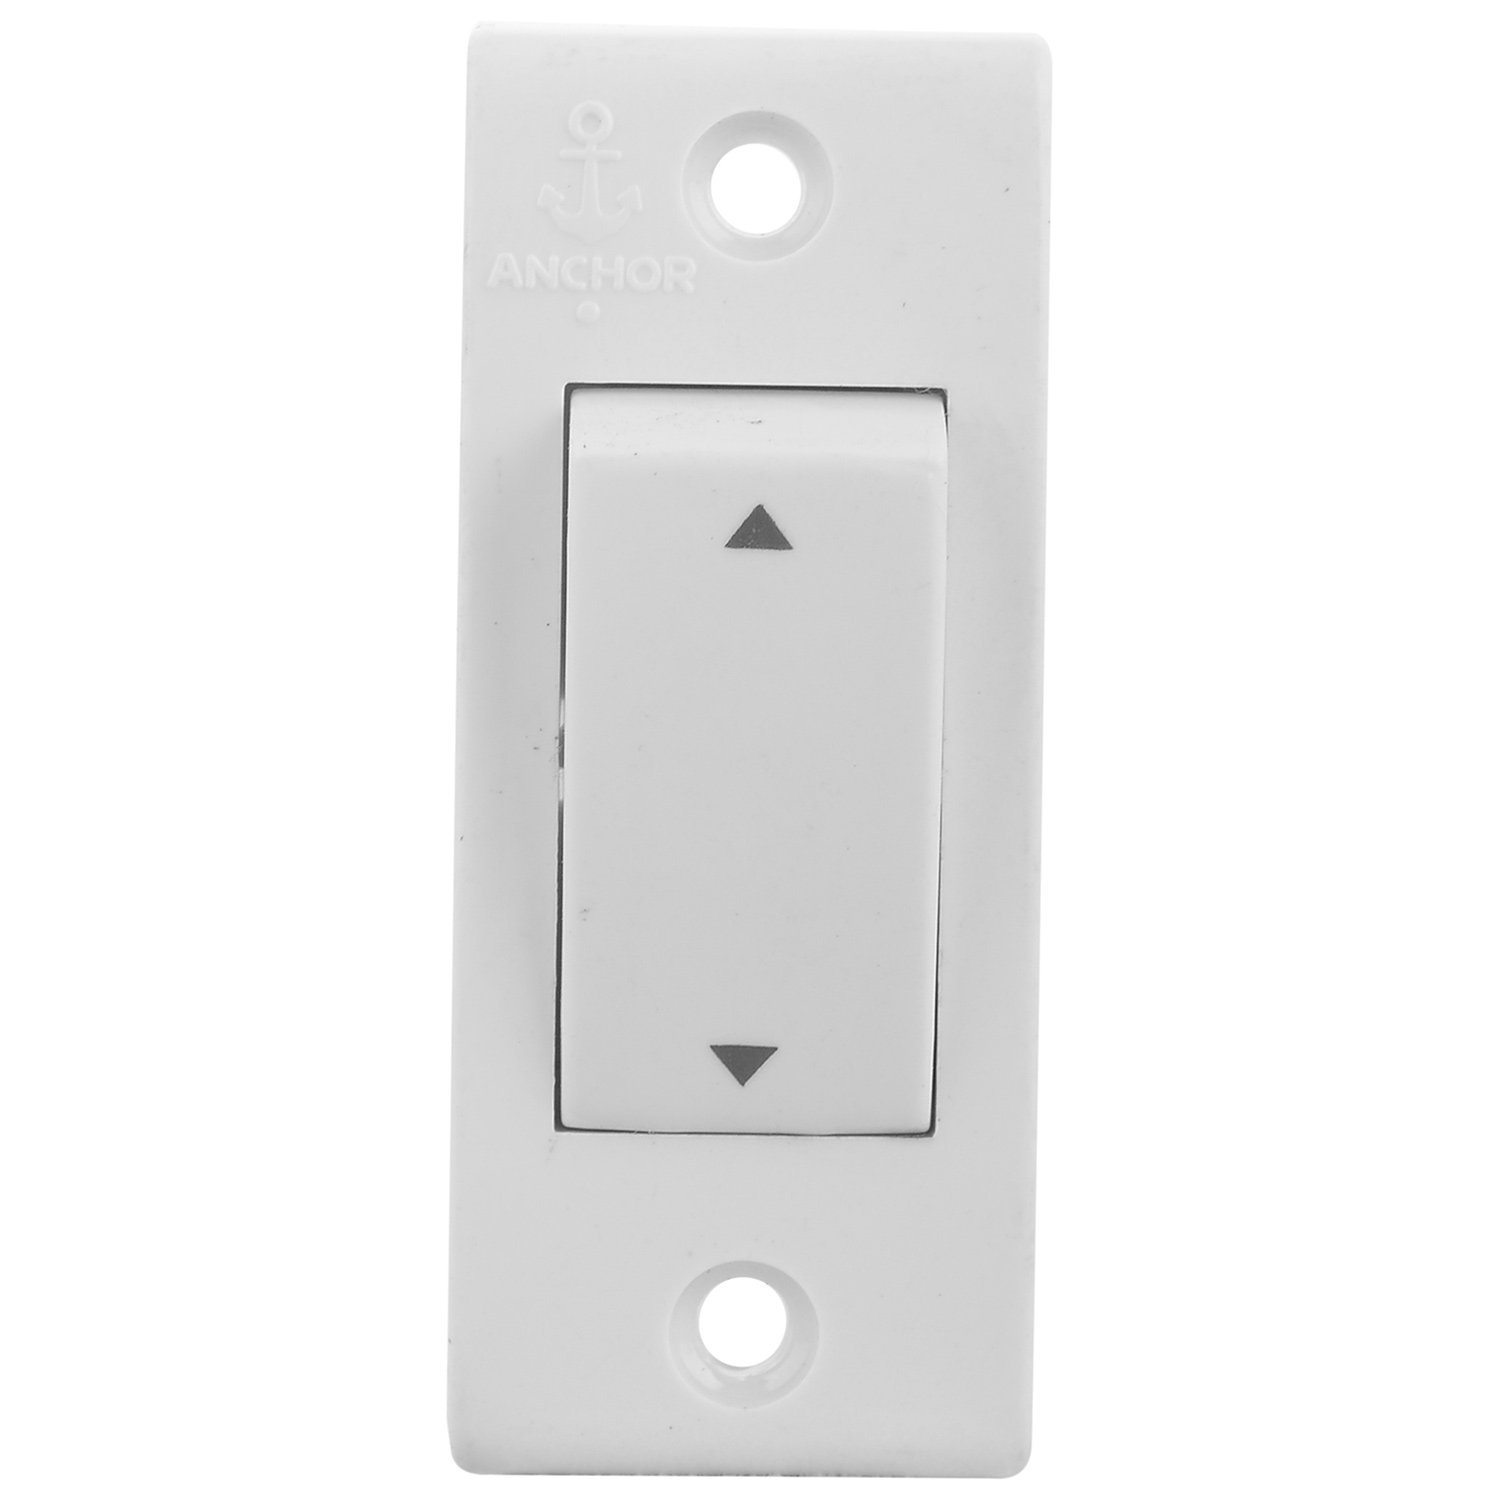 Anchor 14122 Penta Cherry WH 2 -Way Switch, 6 Amp, White: Amazon.in ...